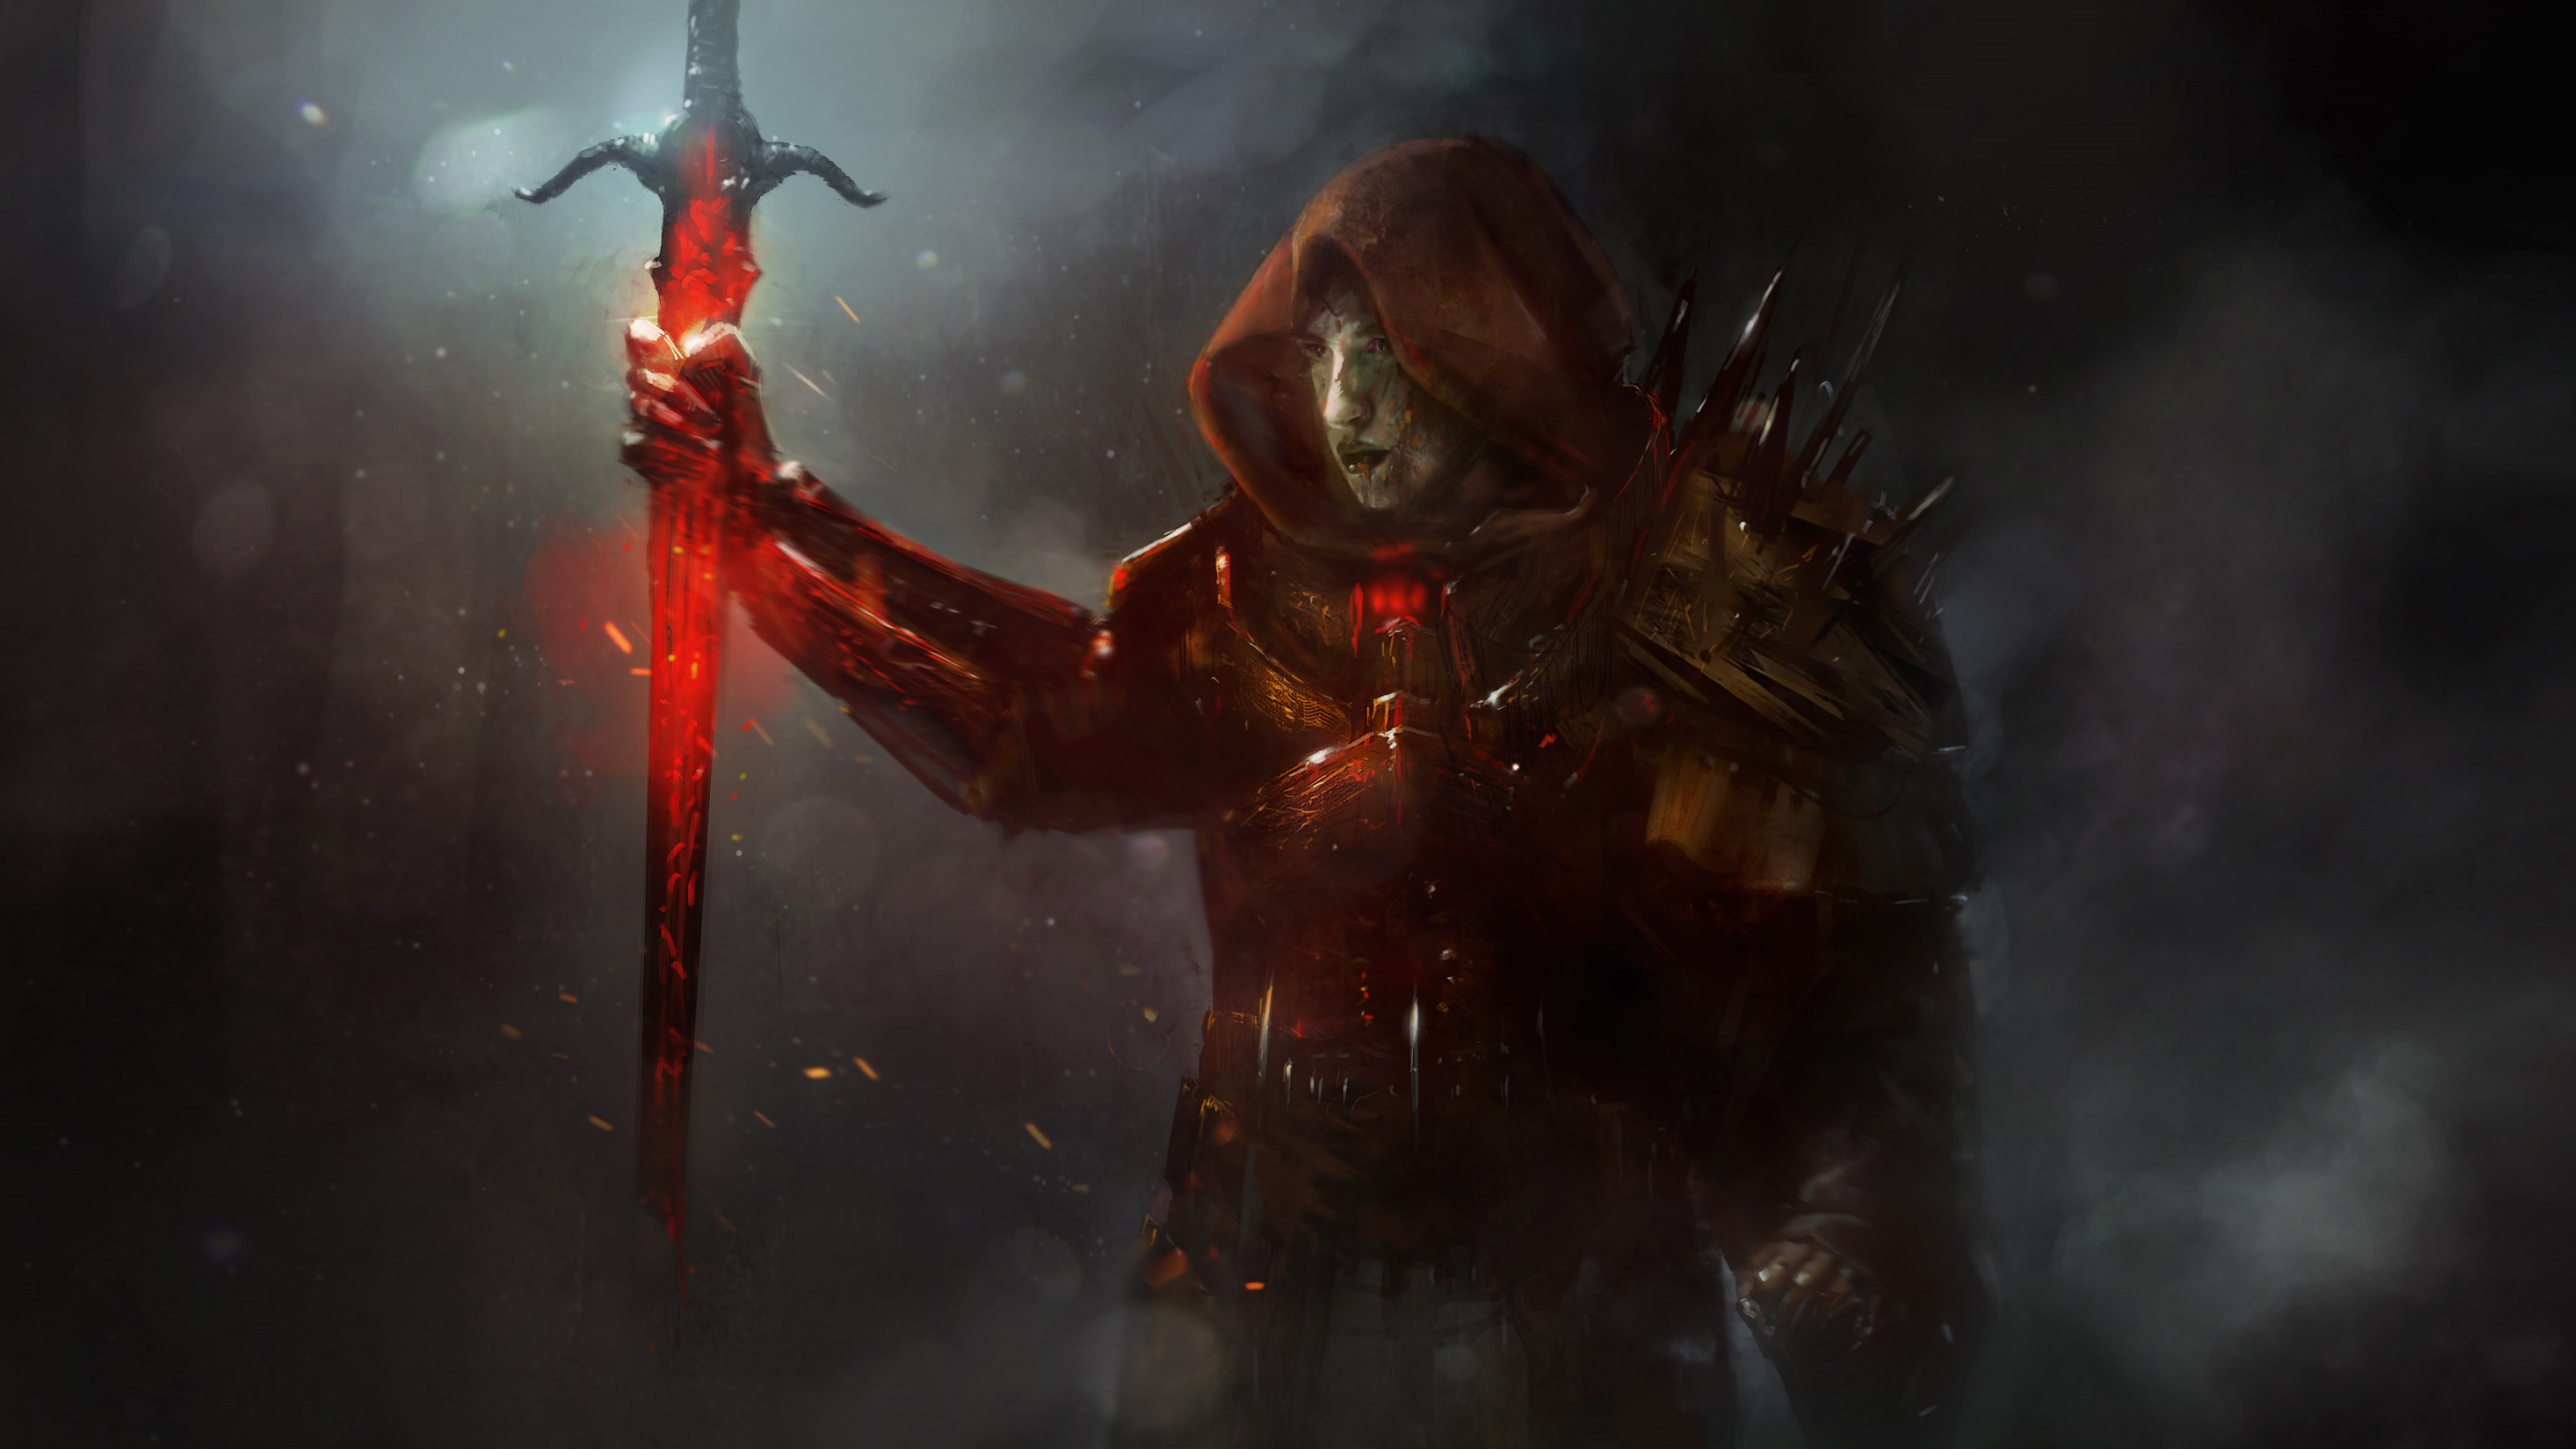 Warrior full hd wallpaper and background image 3200x1800 - 3200x1800 wallpaper ...